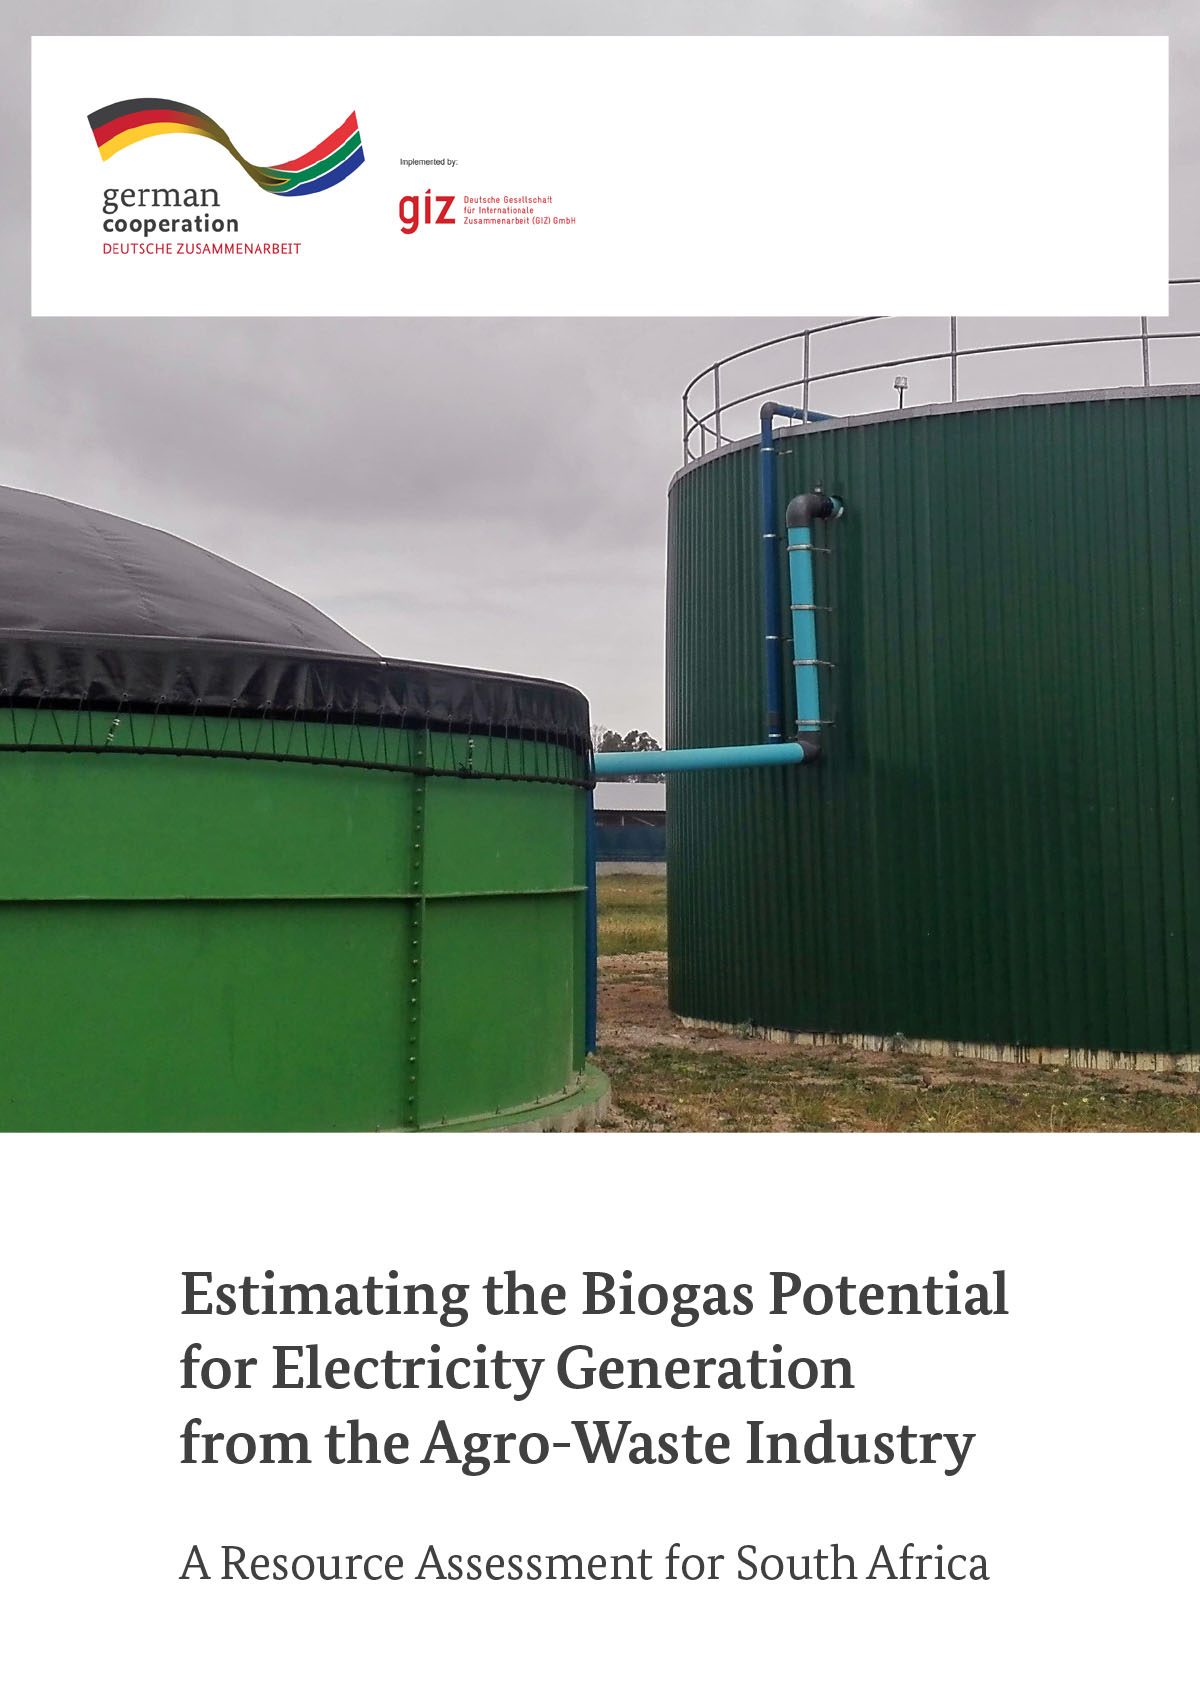 Assessment of Biogas Potential from Agro-Waste in South Africa